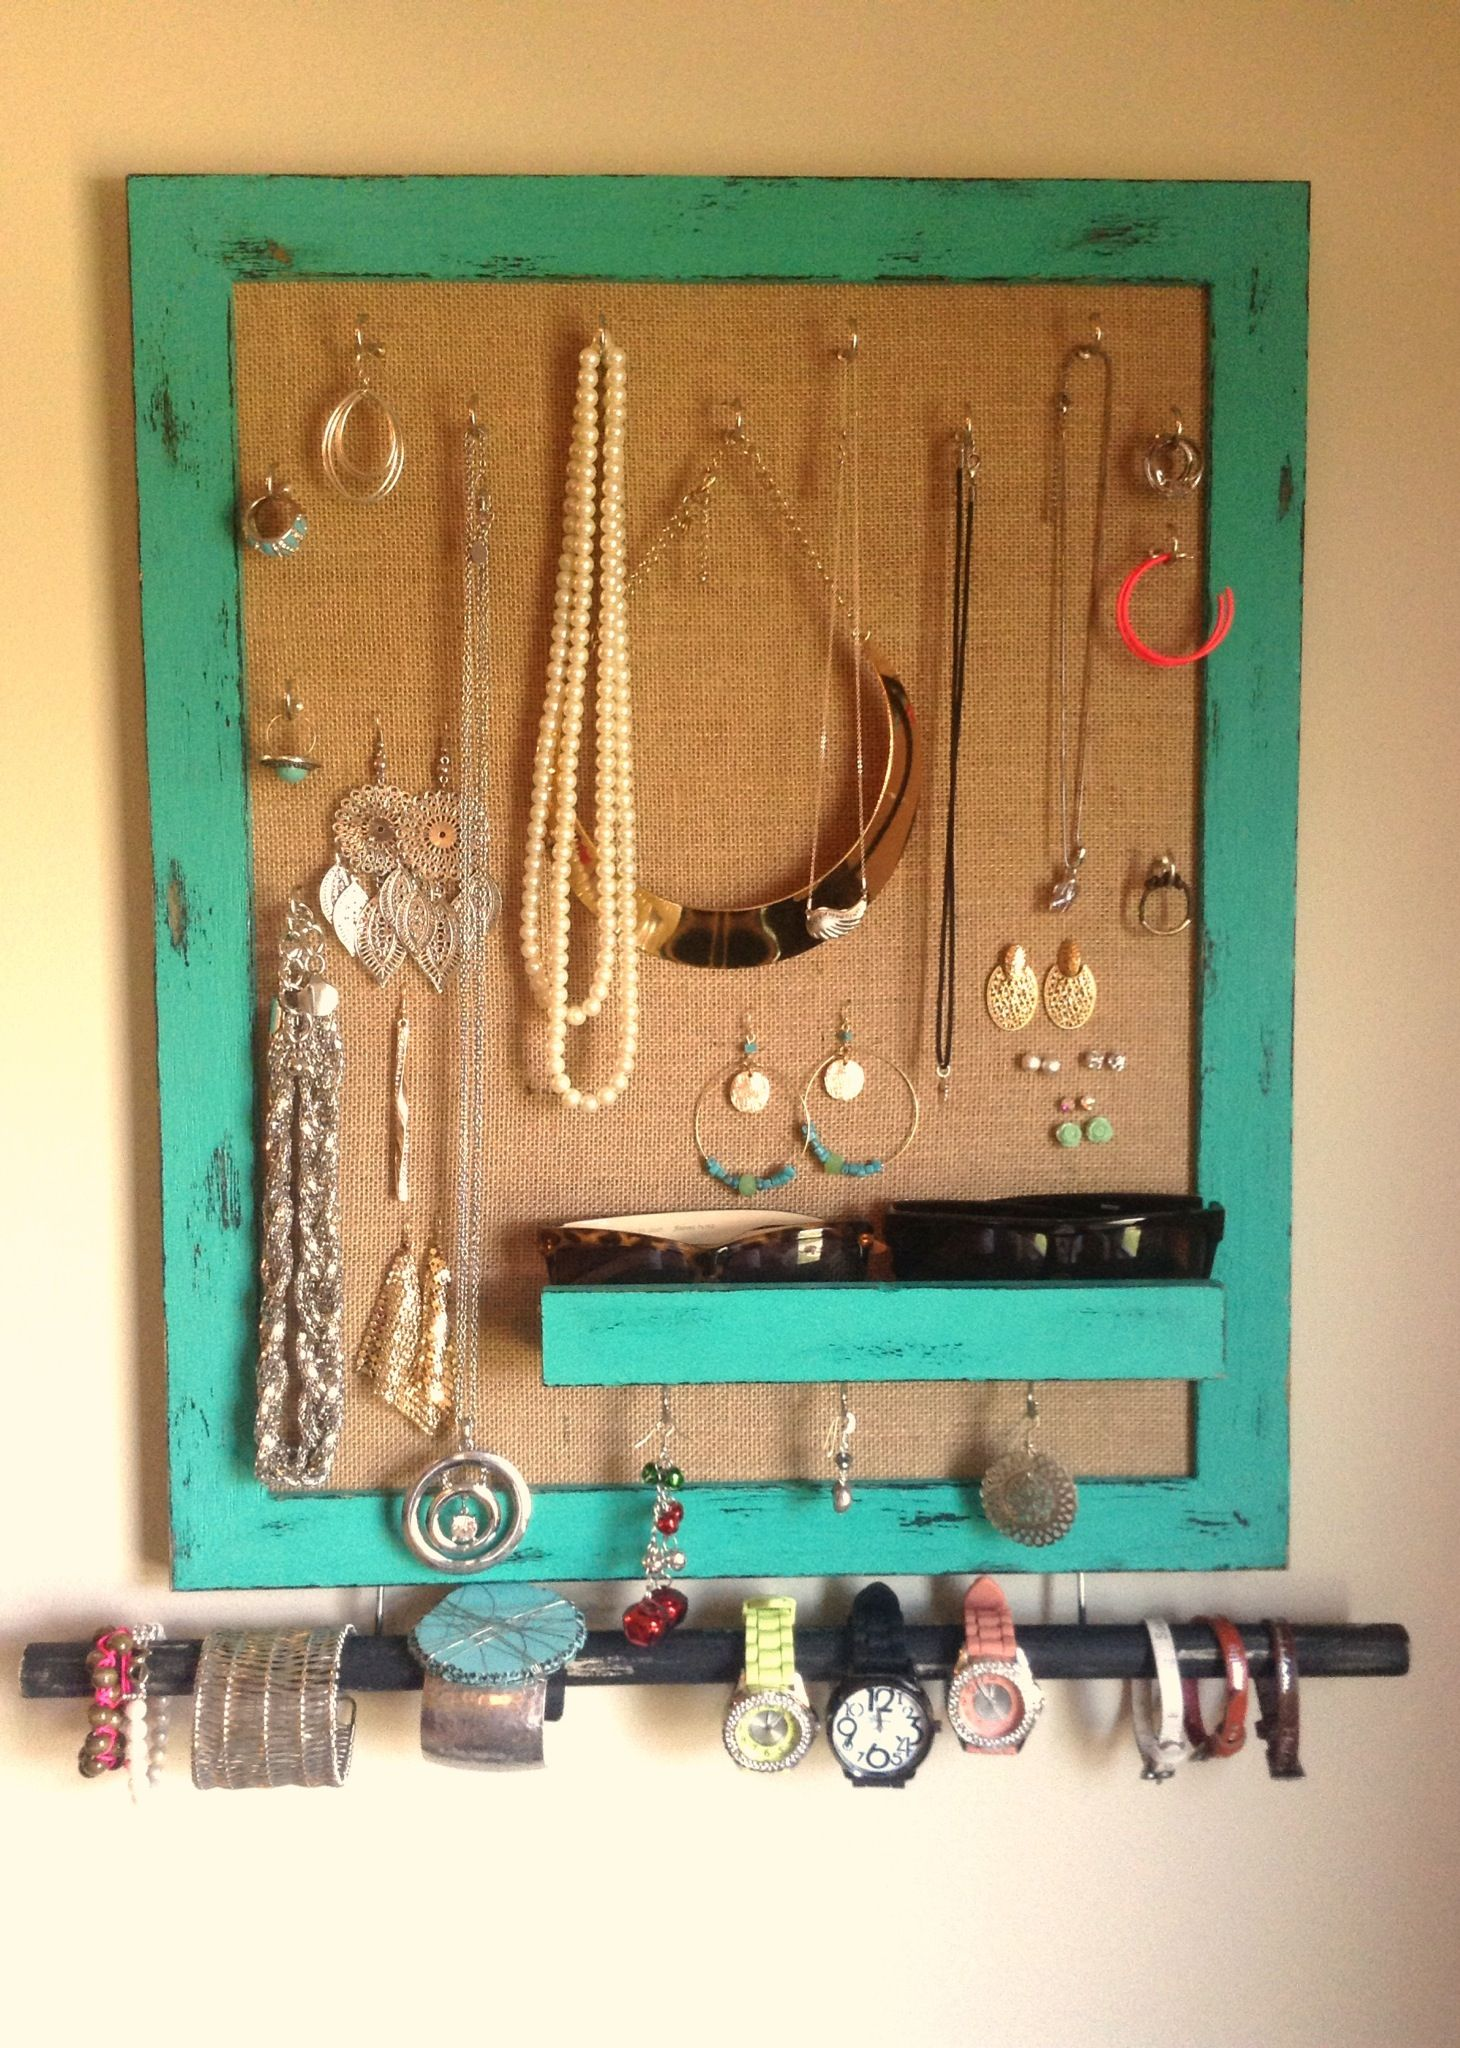 DIY Jewelry holder made with a picture frame and burlap DIY